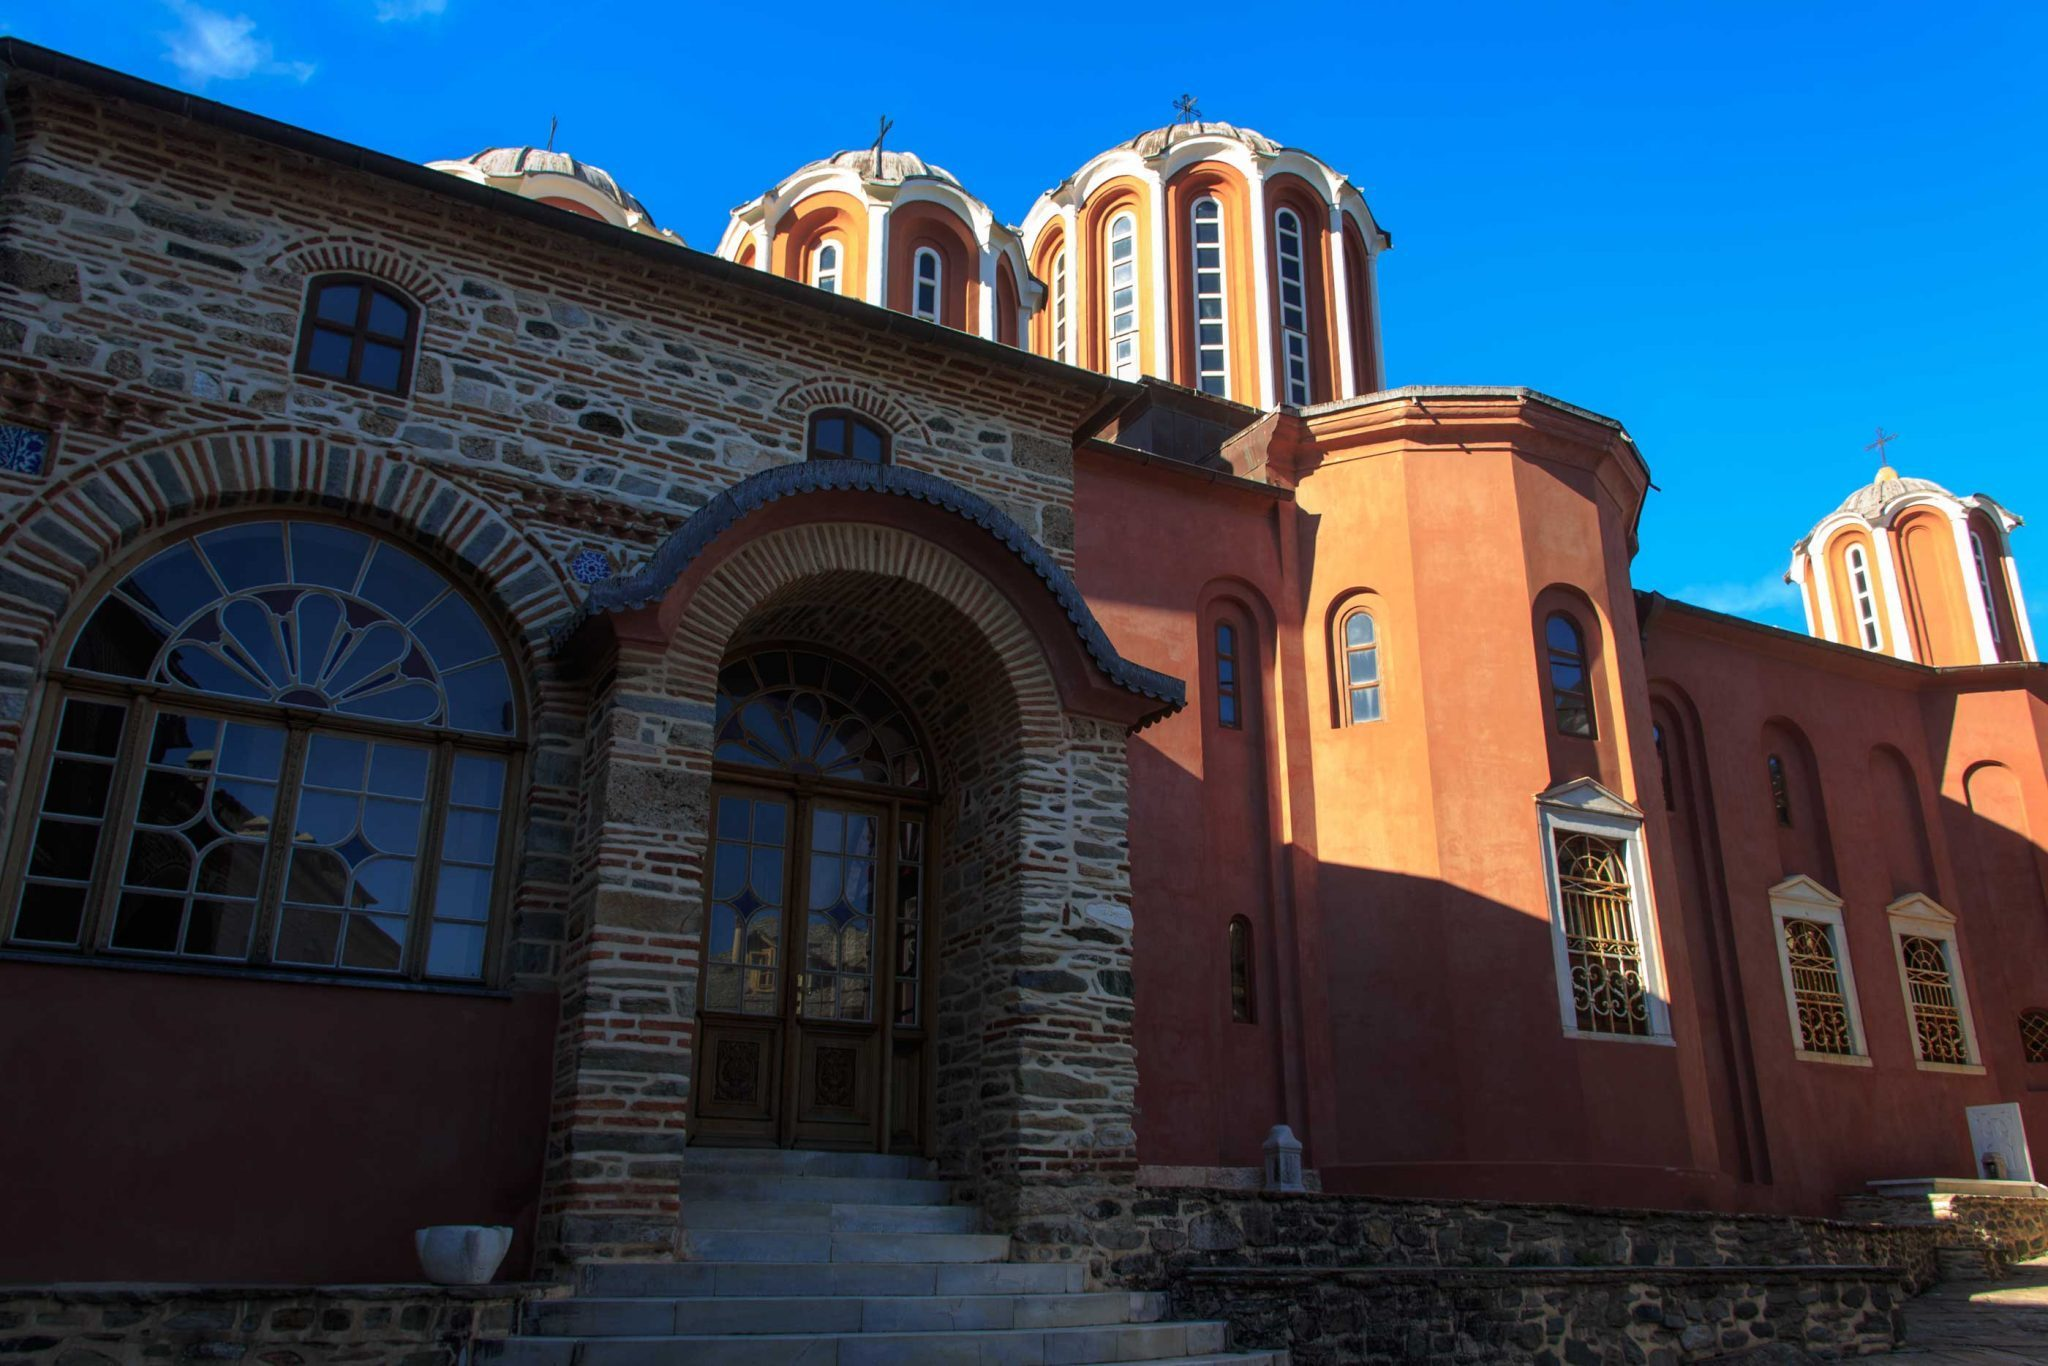 The Holy Monastery of Pantokrator - the katholikon